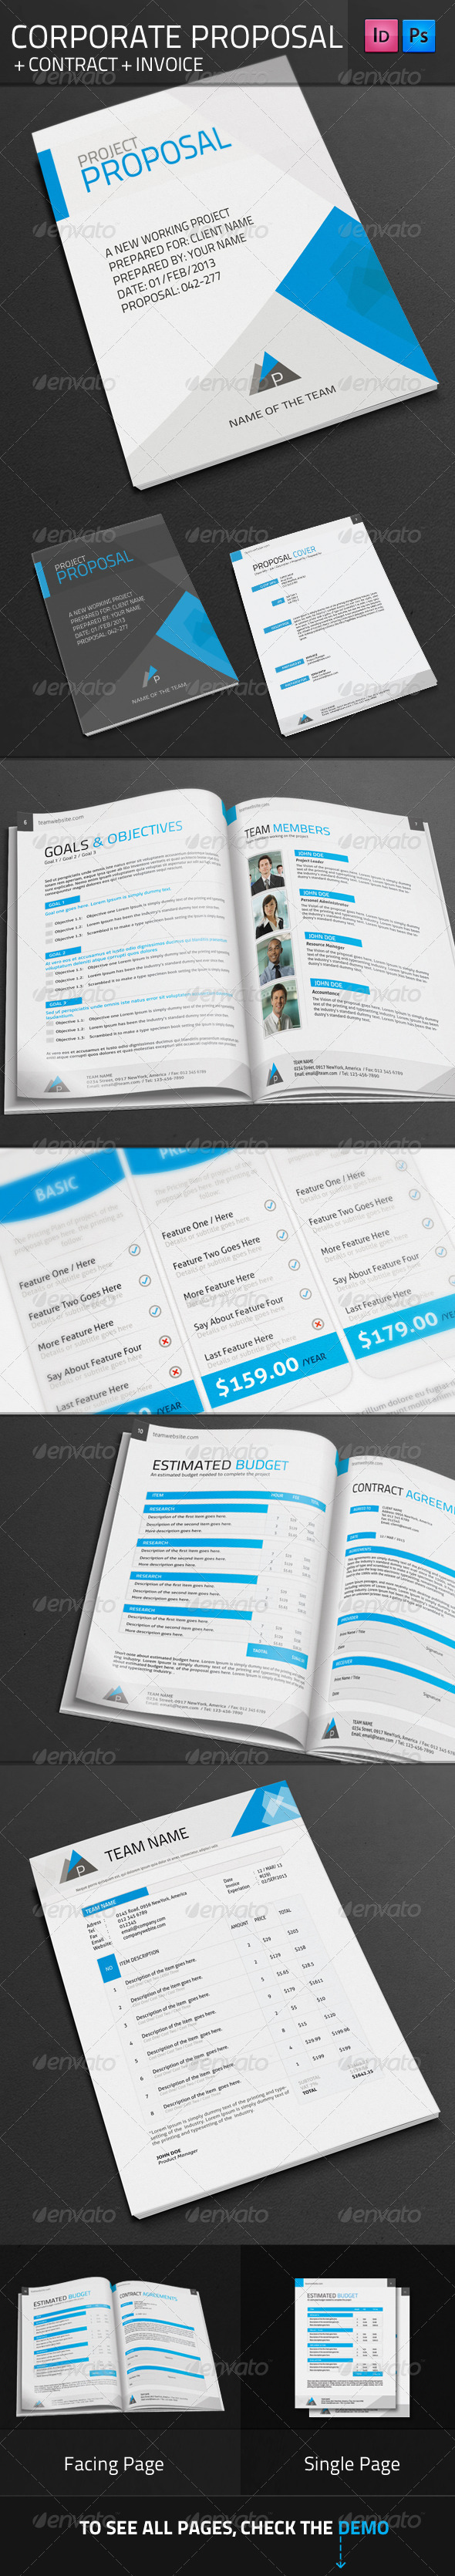 GraphicRiver Corporate Proposal & Contract & Invoince 3033074